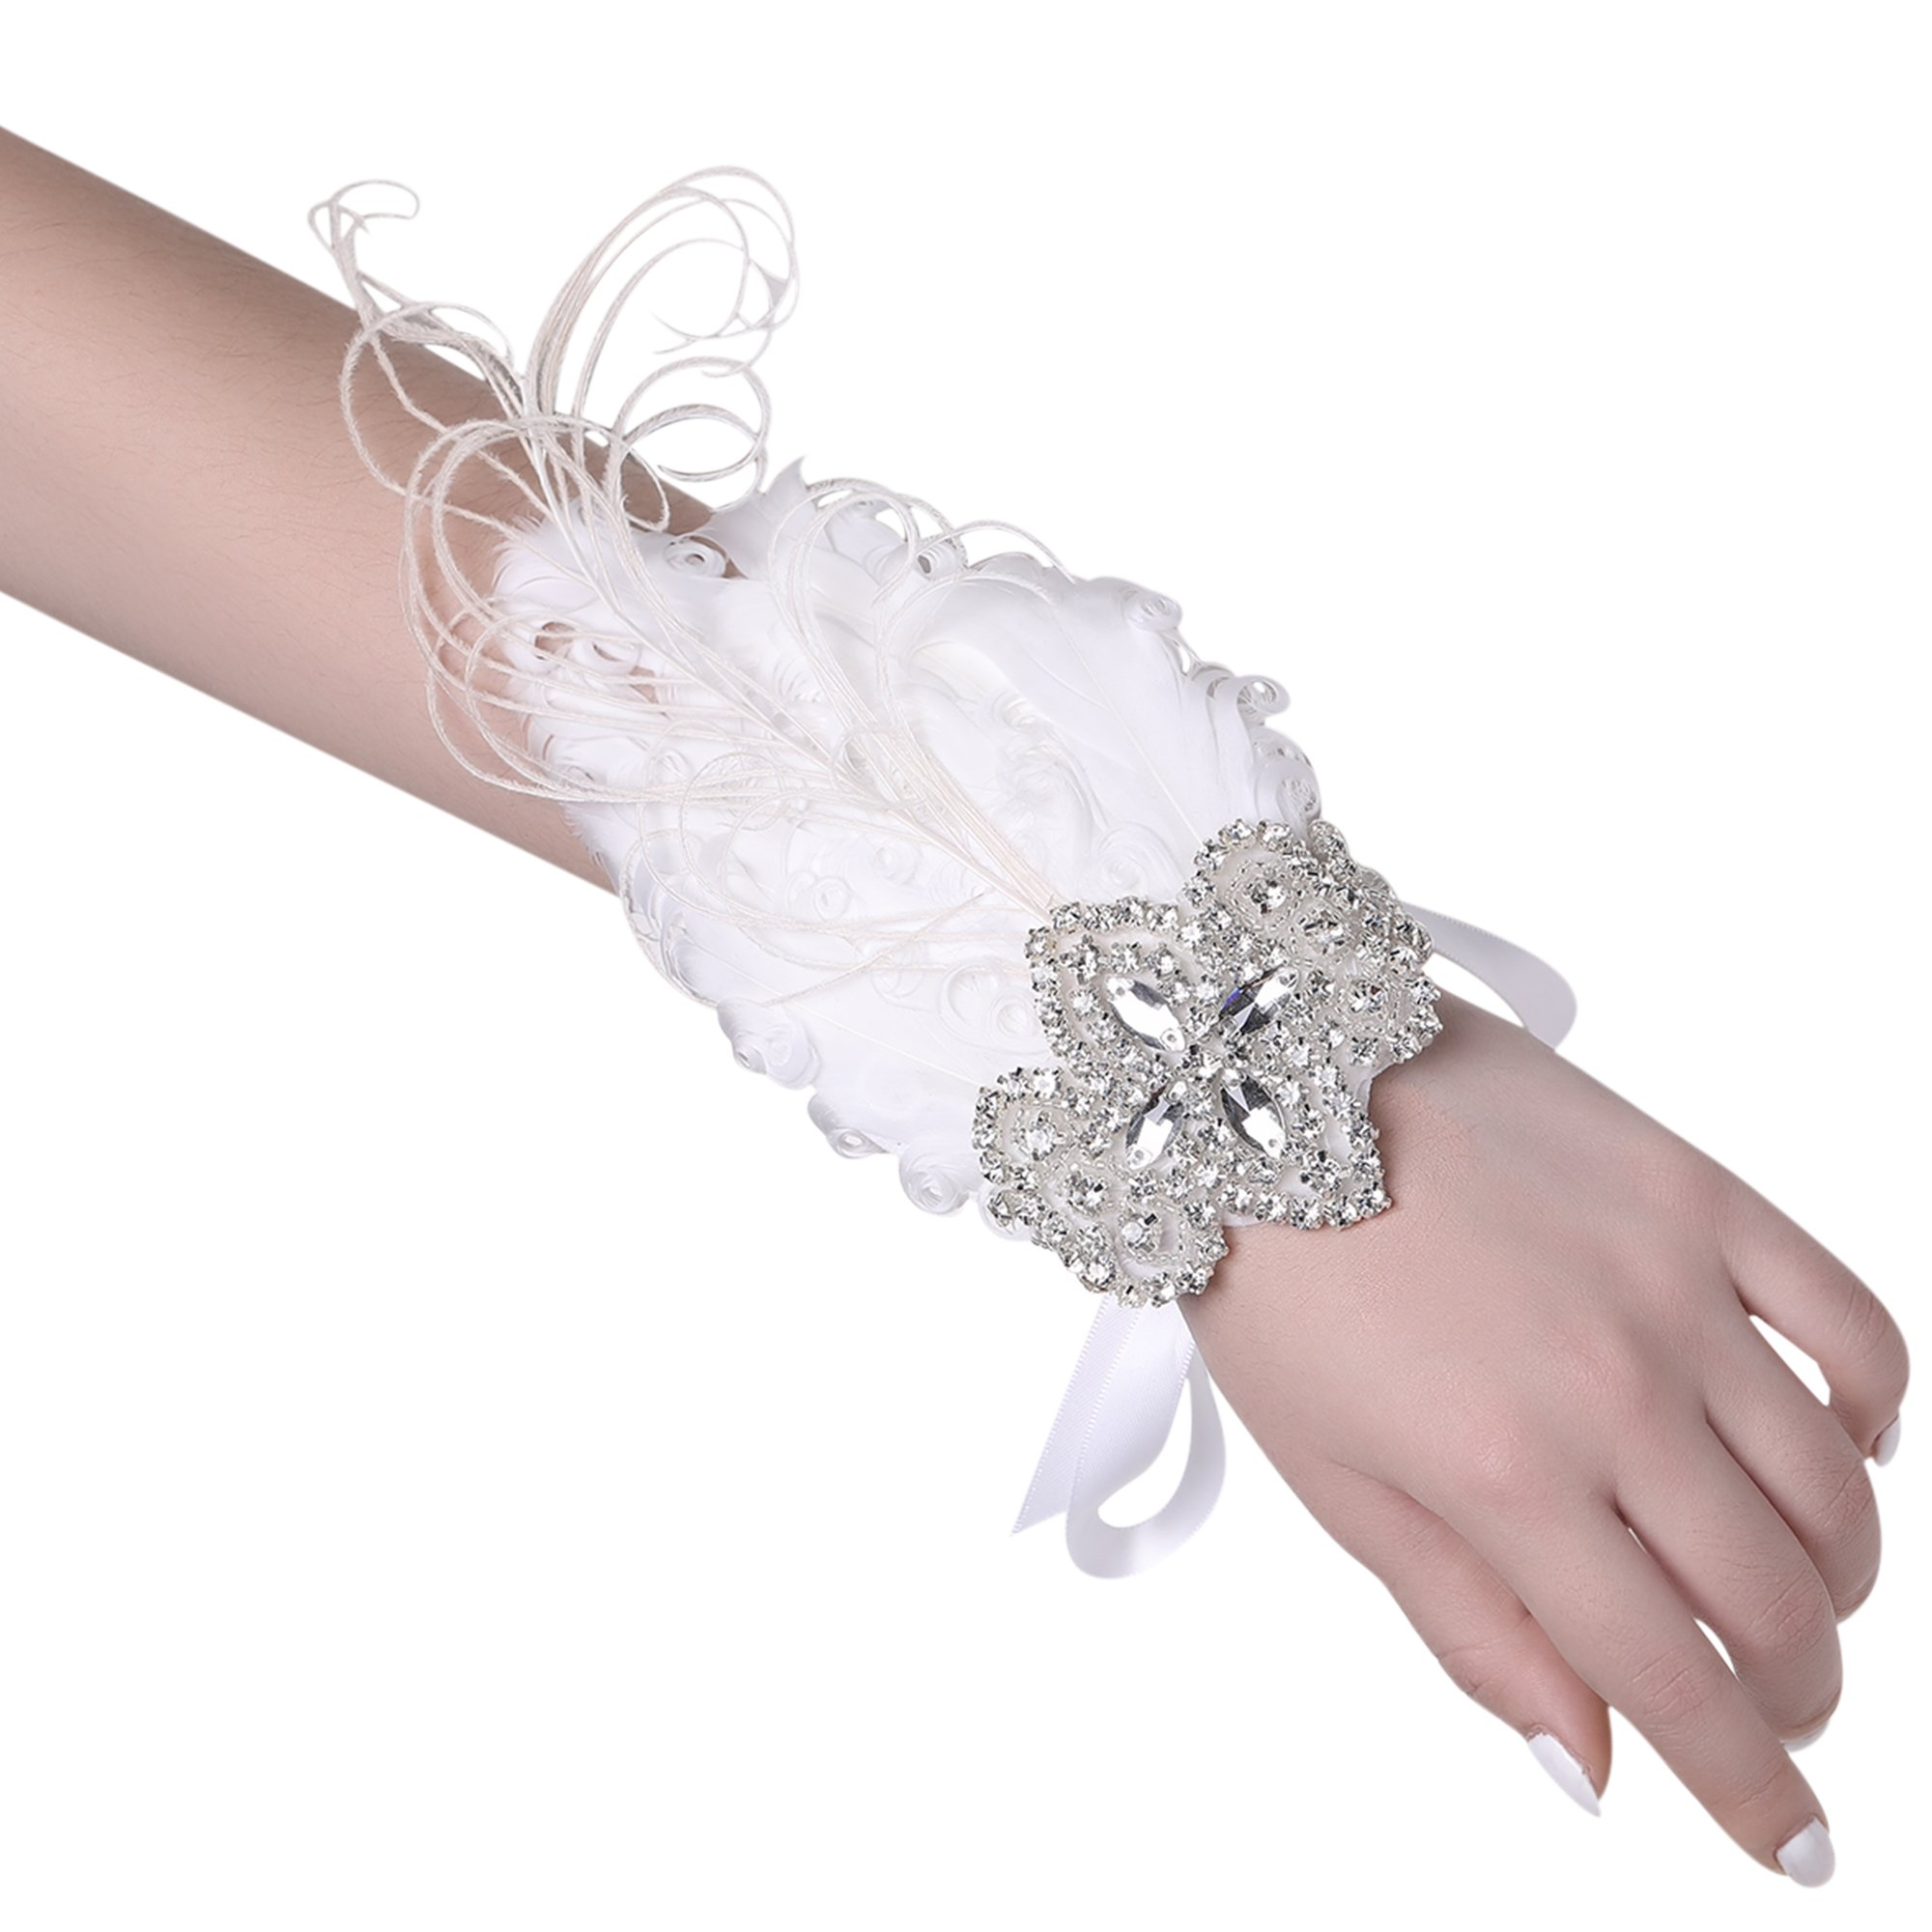 BABEYOND 1920s Wedding Wrist Corsage Gatsby Peacock Feather Bridal Wristband Corsage Roaring 20s Flapper Wedding Costume Accessories (White by BABEYOND (Image #1)